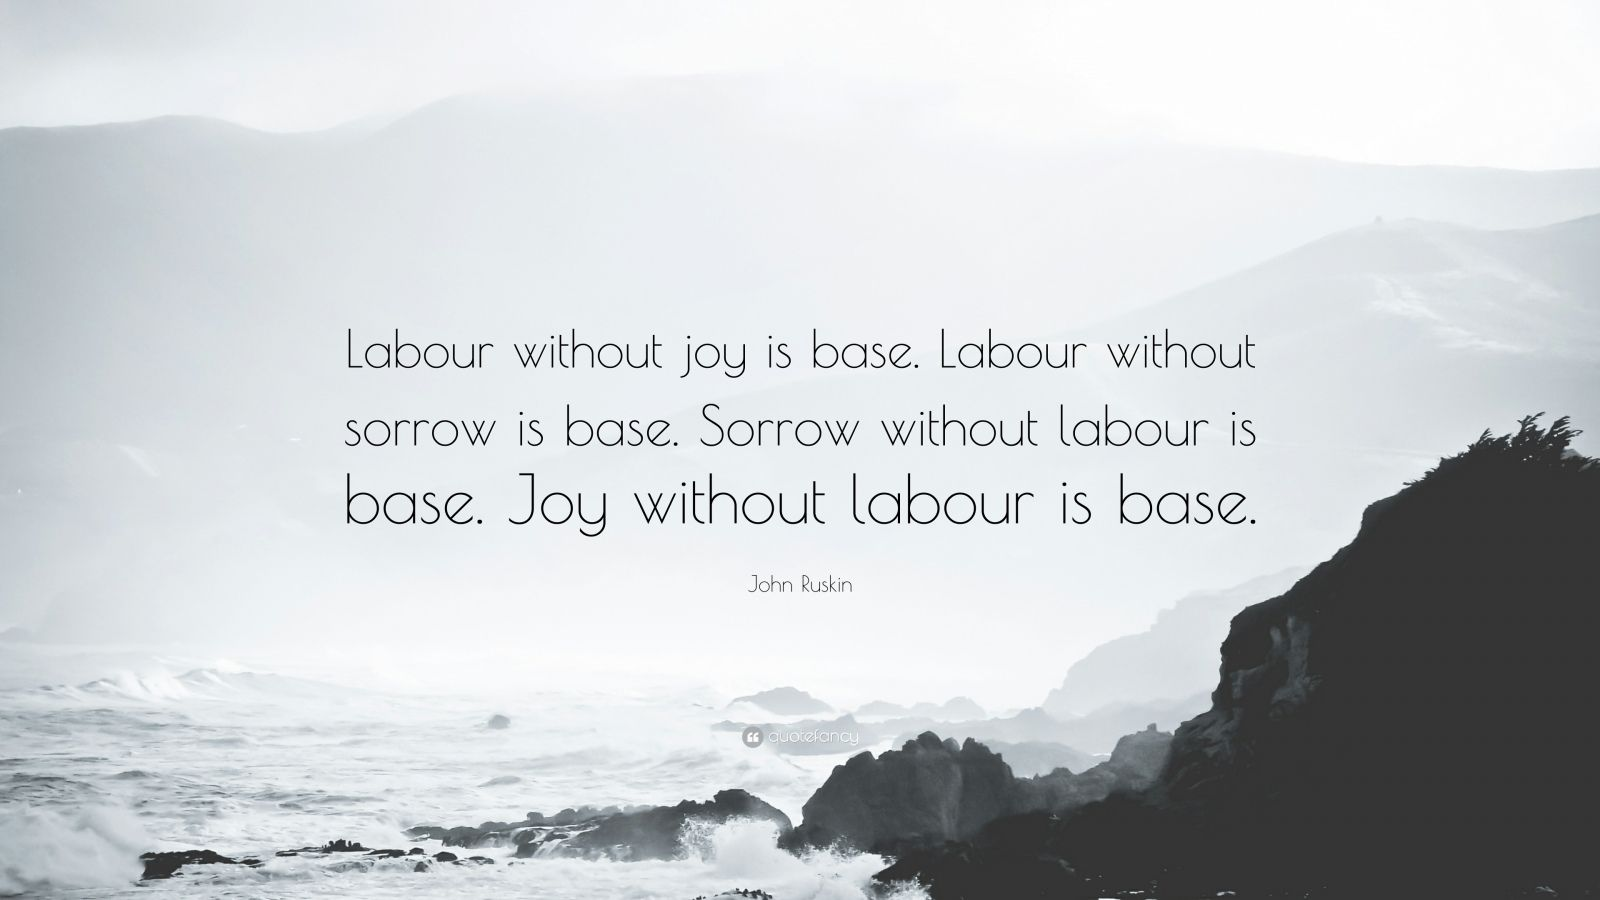 """John Ruskin Quote: """"Labour without joy is base. Labour without sorrow is base. Sorrow without labour is base. Joy without labour is base."""""""